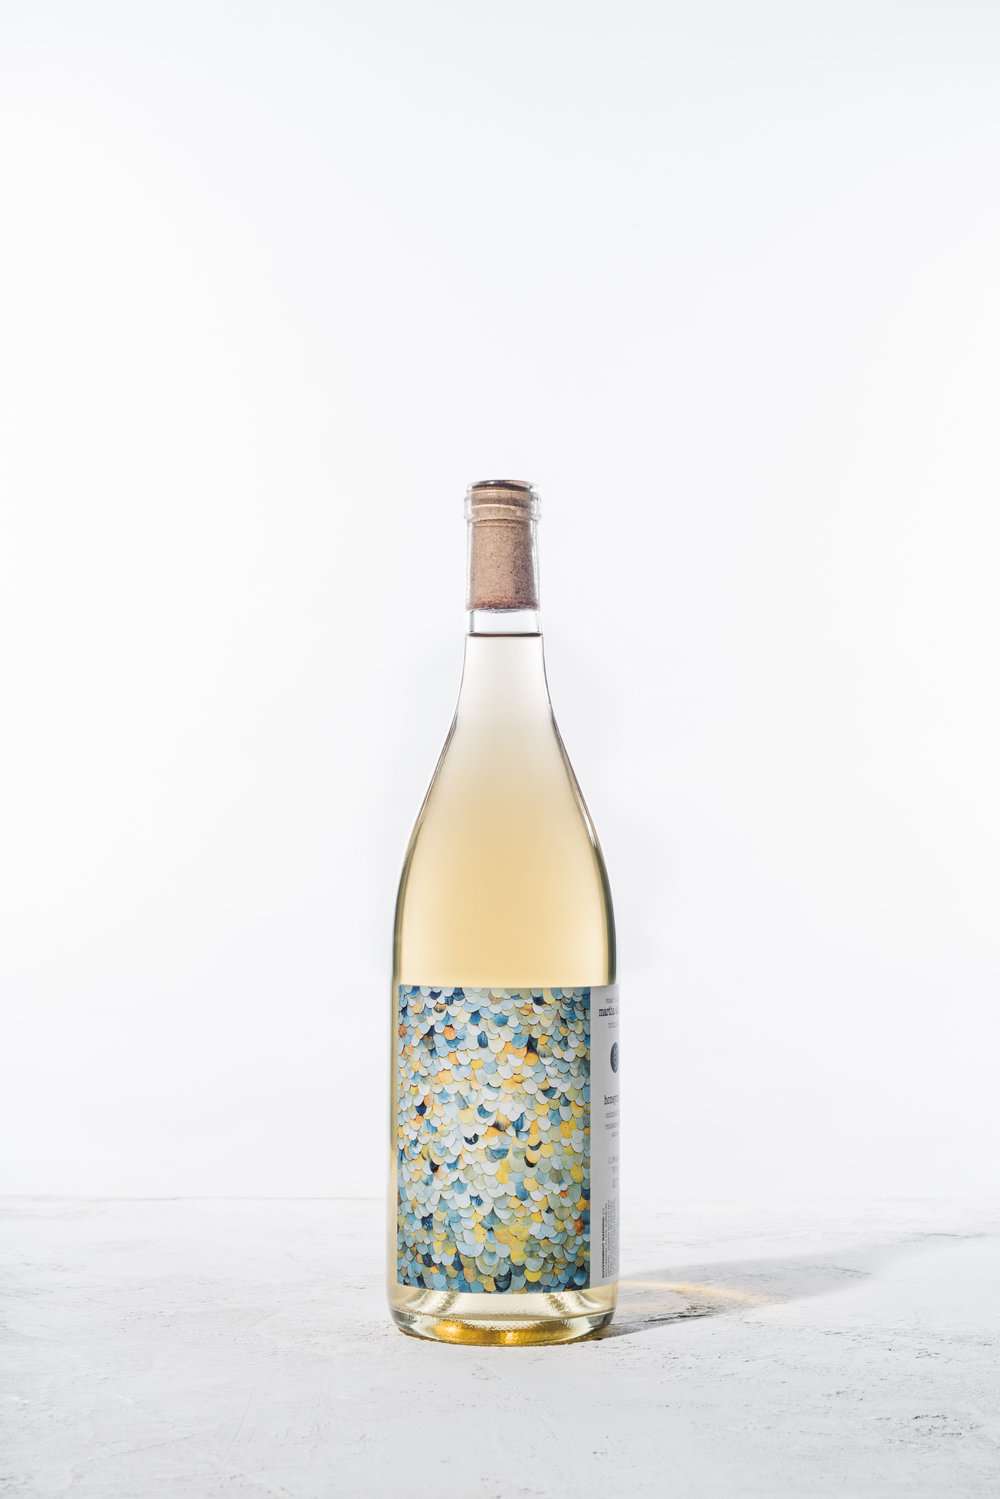 Honeymoon (65% French Colombard, 35% Roussanne) 2017 | $33